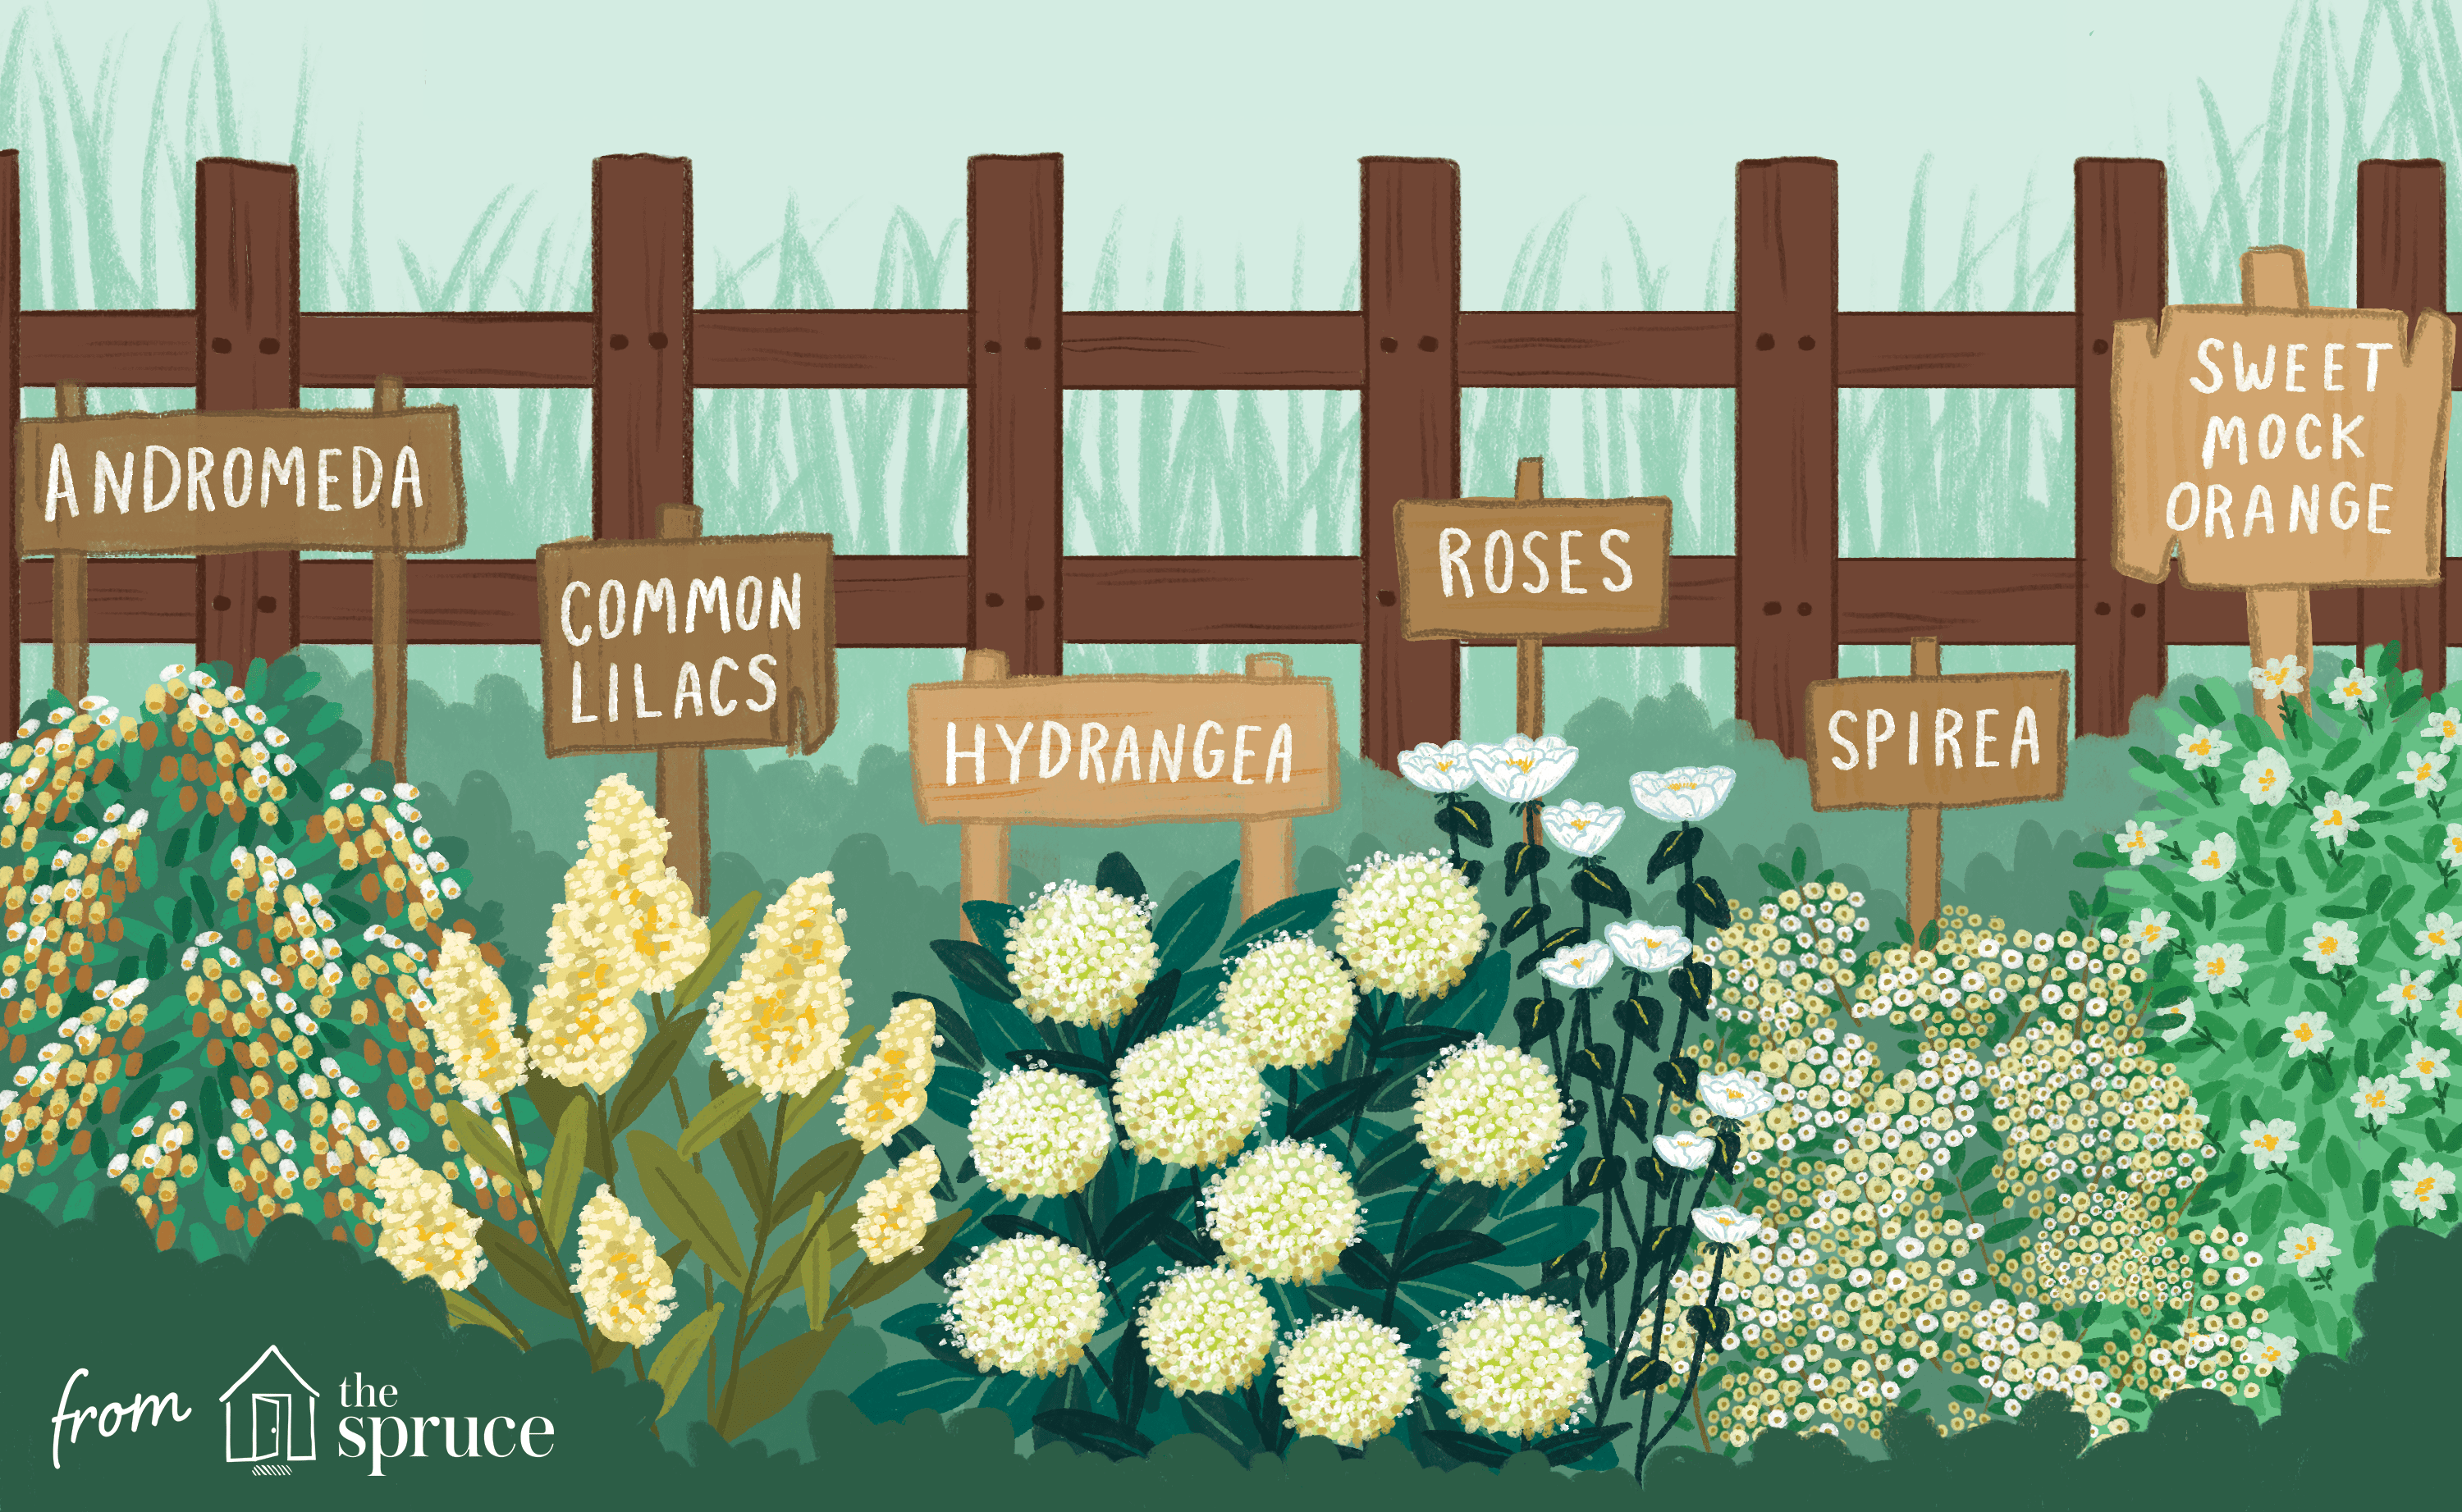 10 Great Shrubs That Bloom With White Flowers